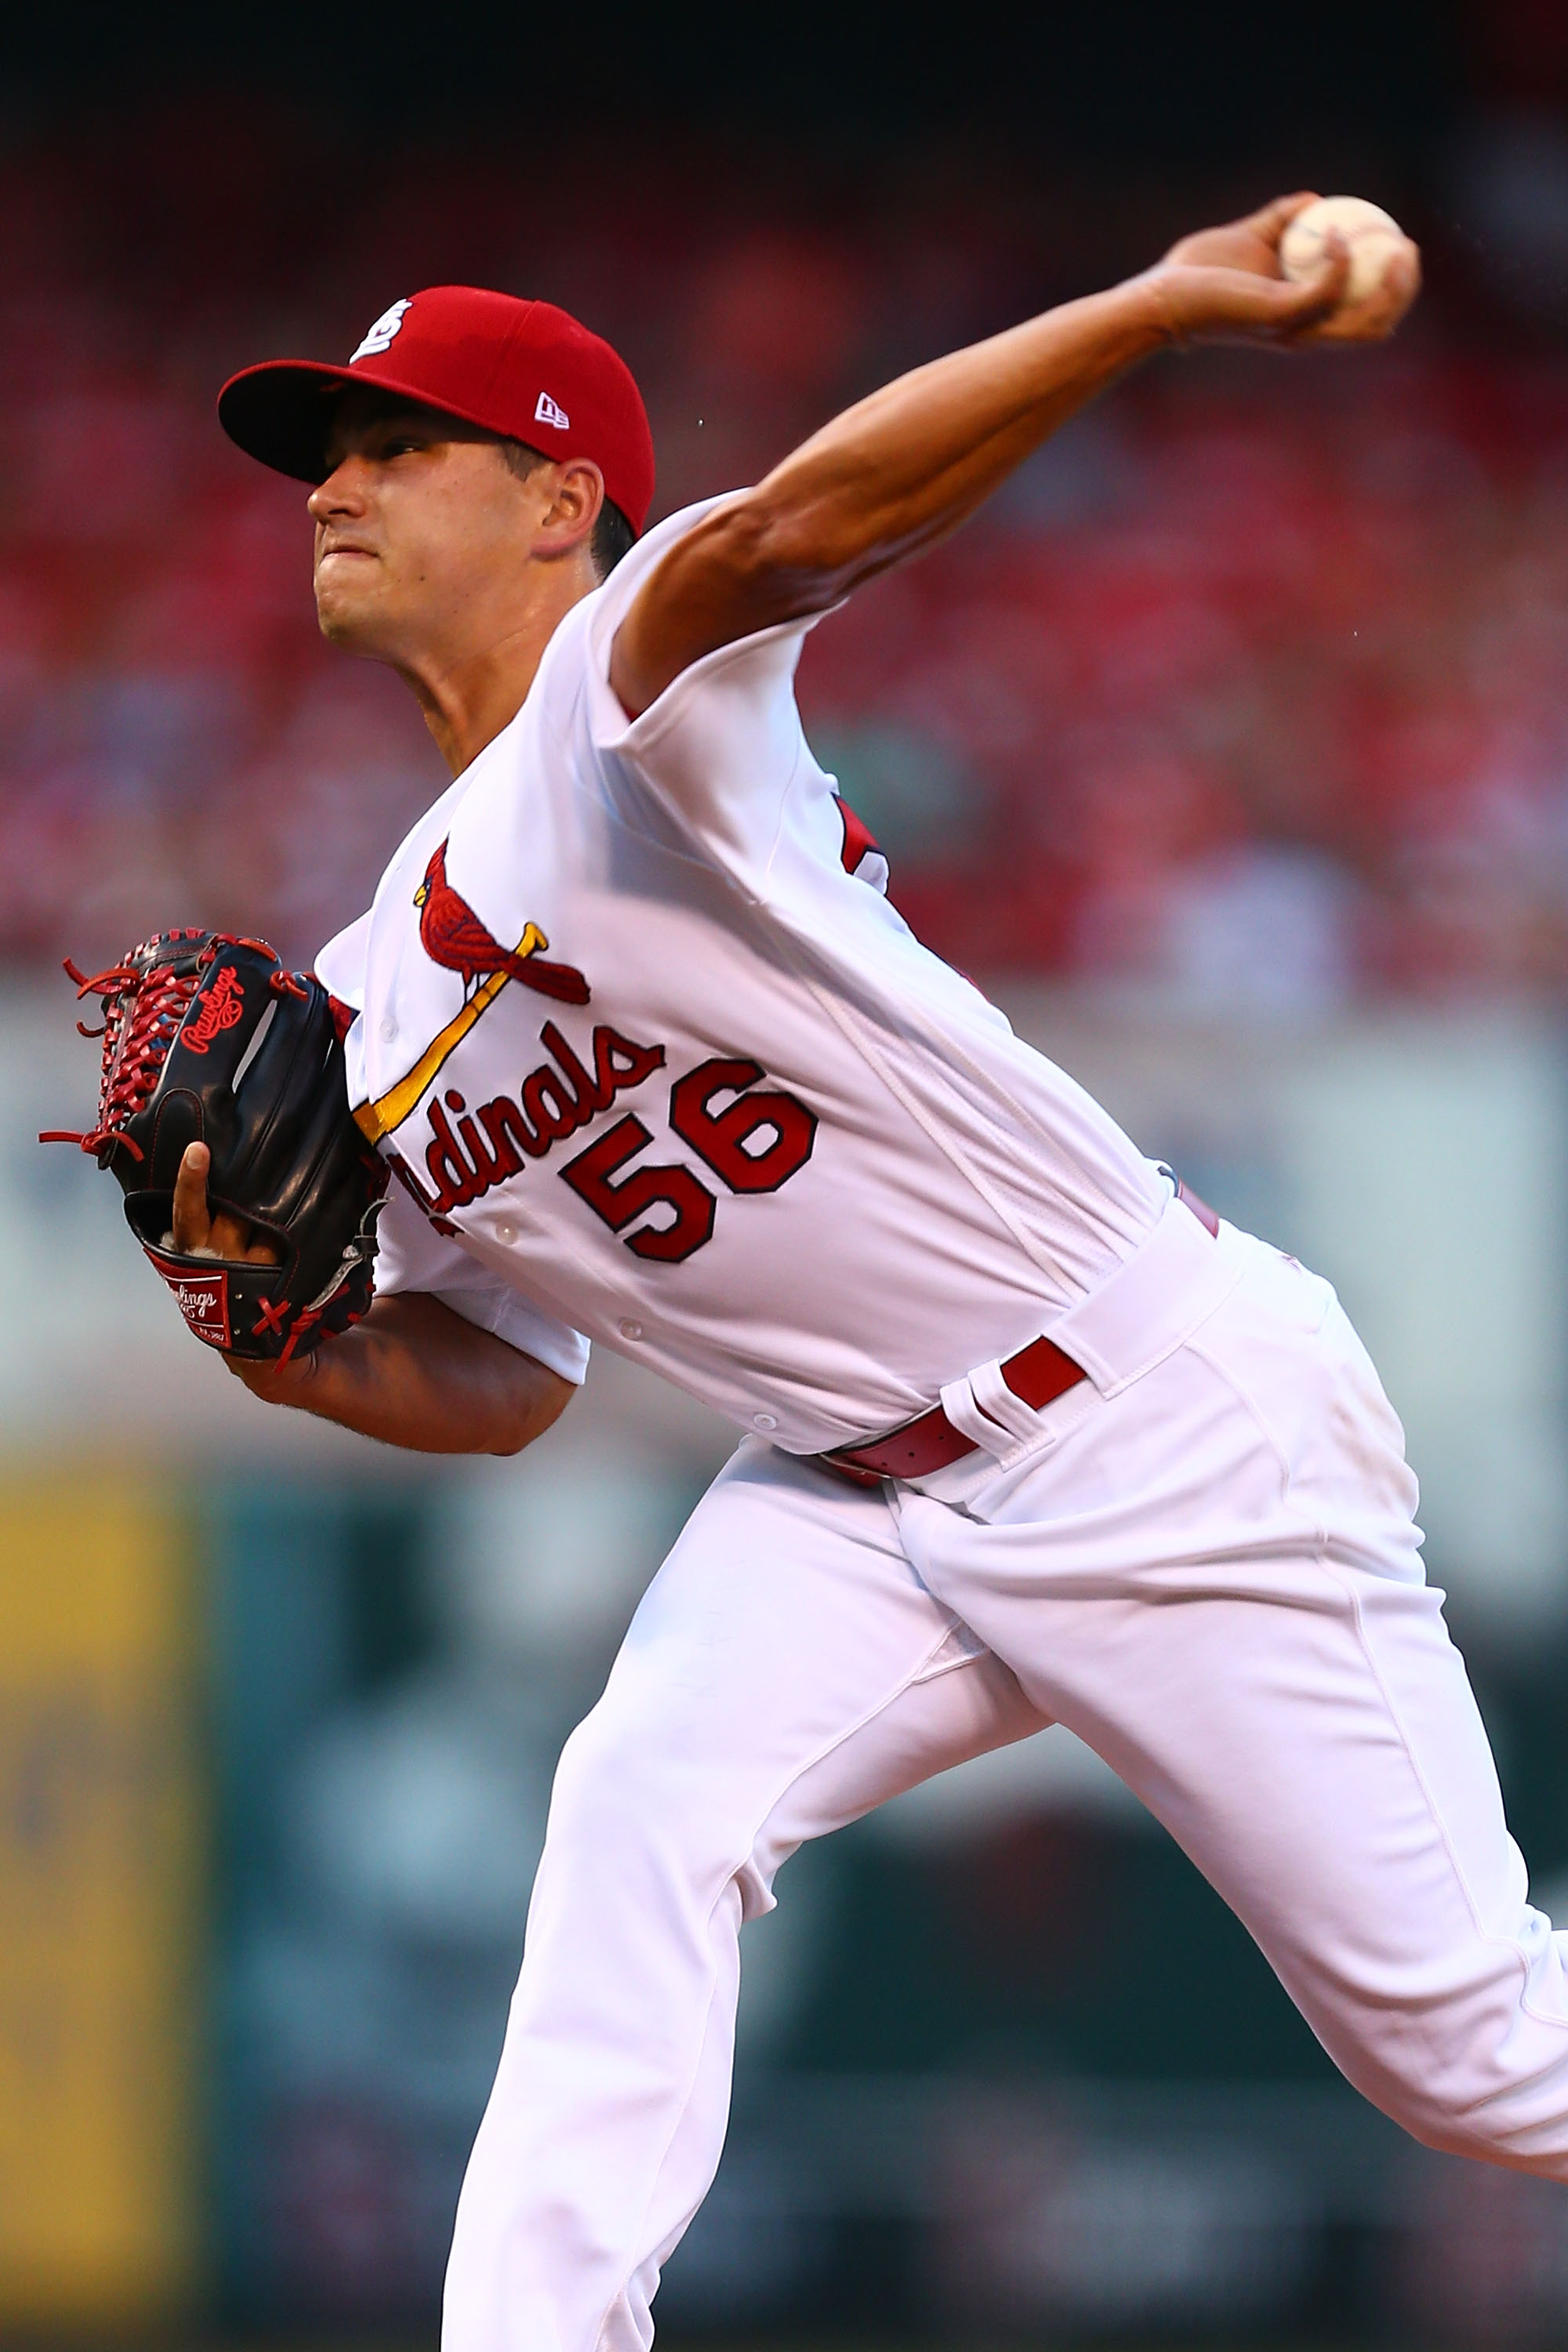 695735358-milwaukee-brewers-v-st-louis-cardinals-game-two.jpg